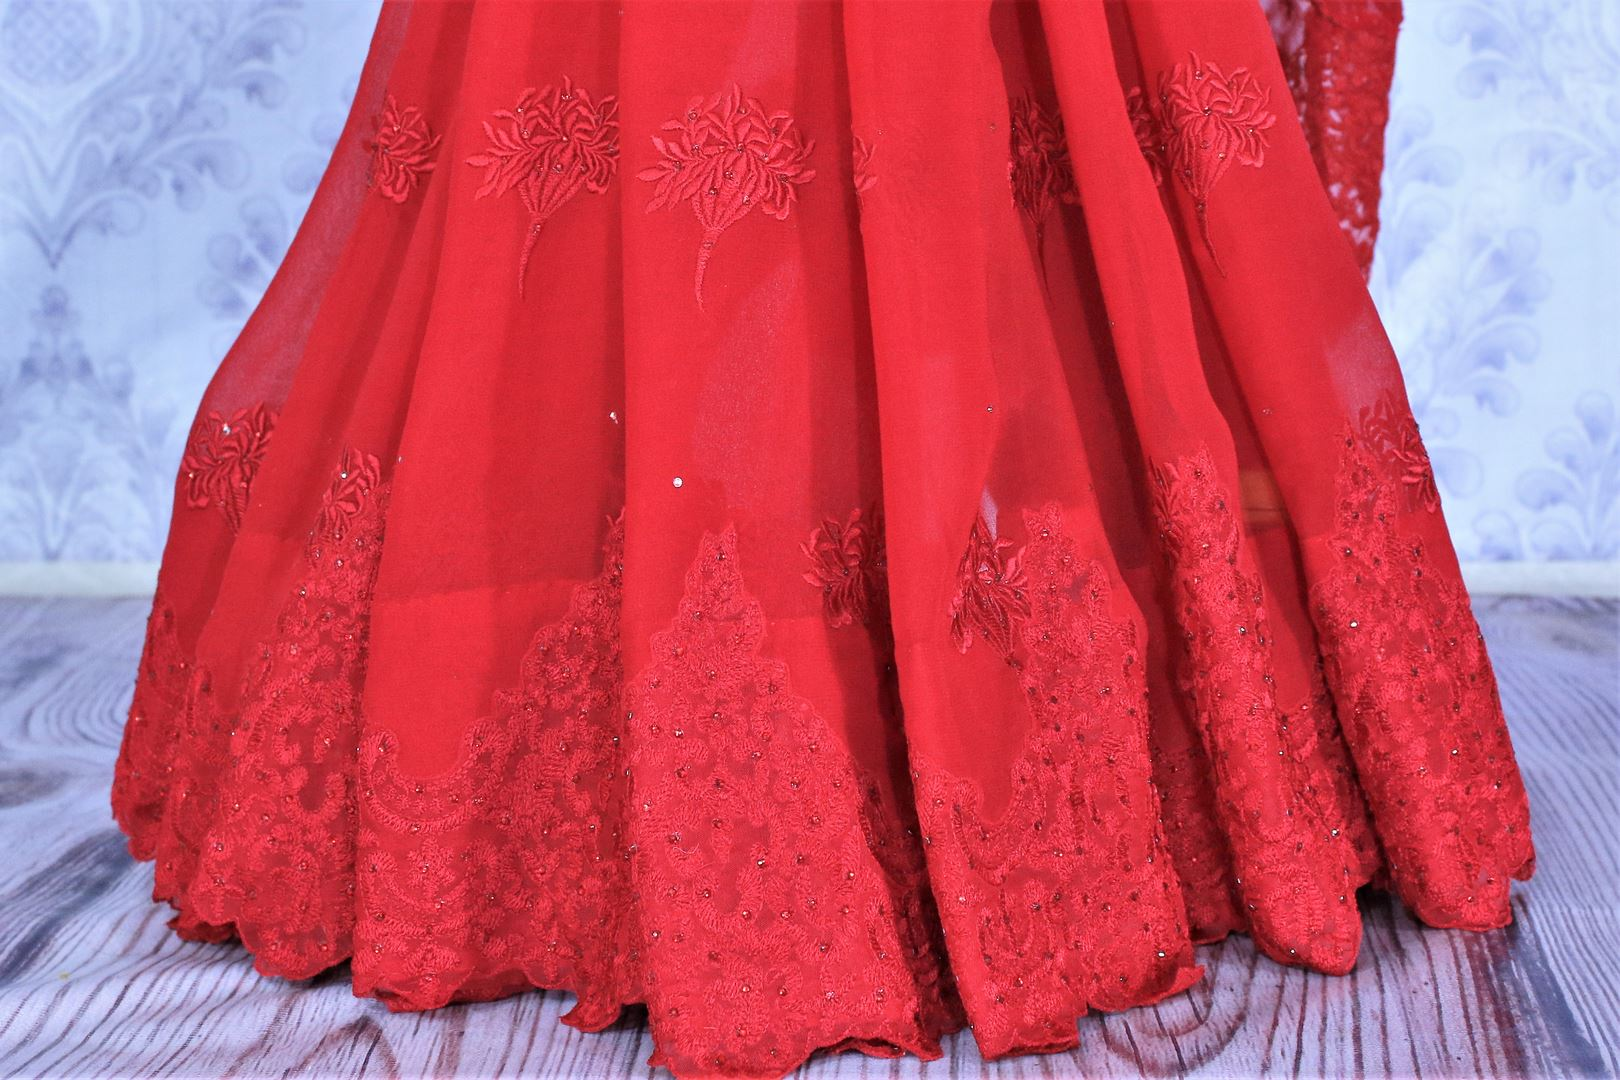 Buy bright red embroidered georgette saree online in USA. Dazzle in this bright color saree with delicate embroidery at parties and special occasions. Make your party look special with beautiful Indian designer sarees available at Pure Elegance Indian clothing store in USA or shop online.-pleats